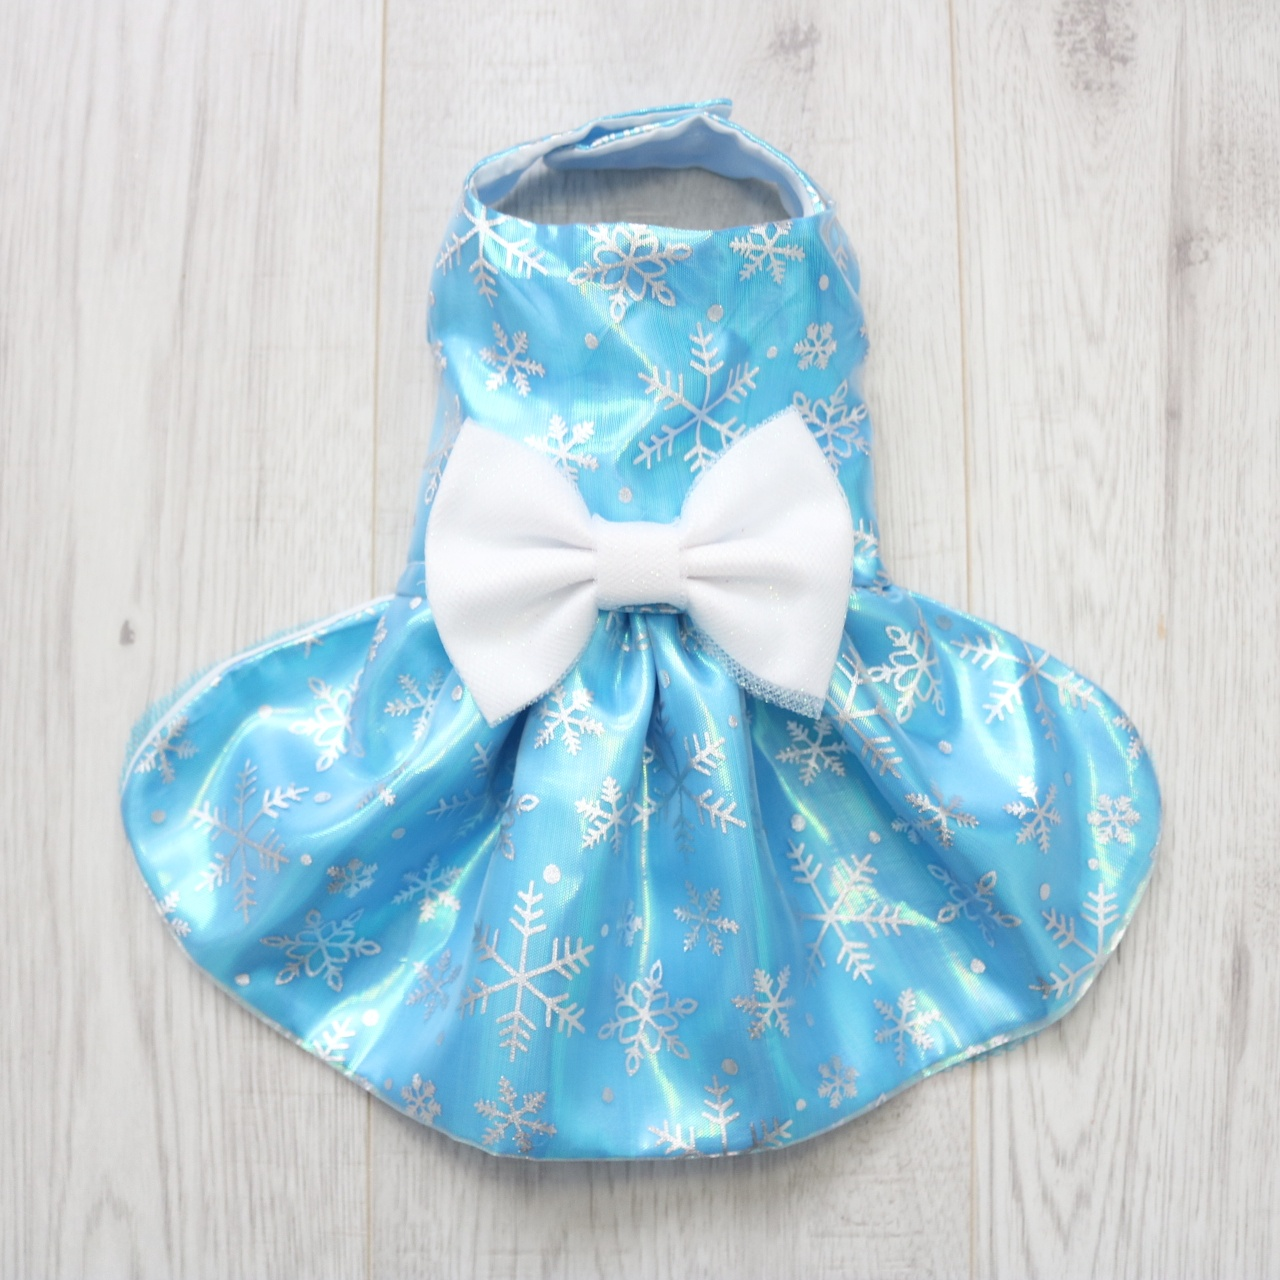 Disney Frozen inspired dog dress